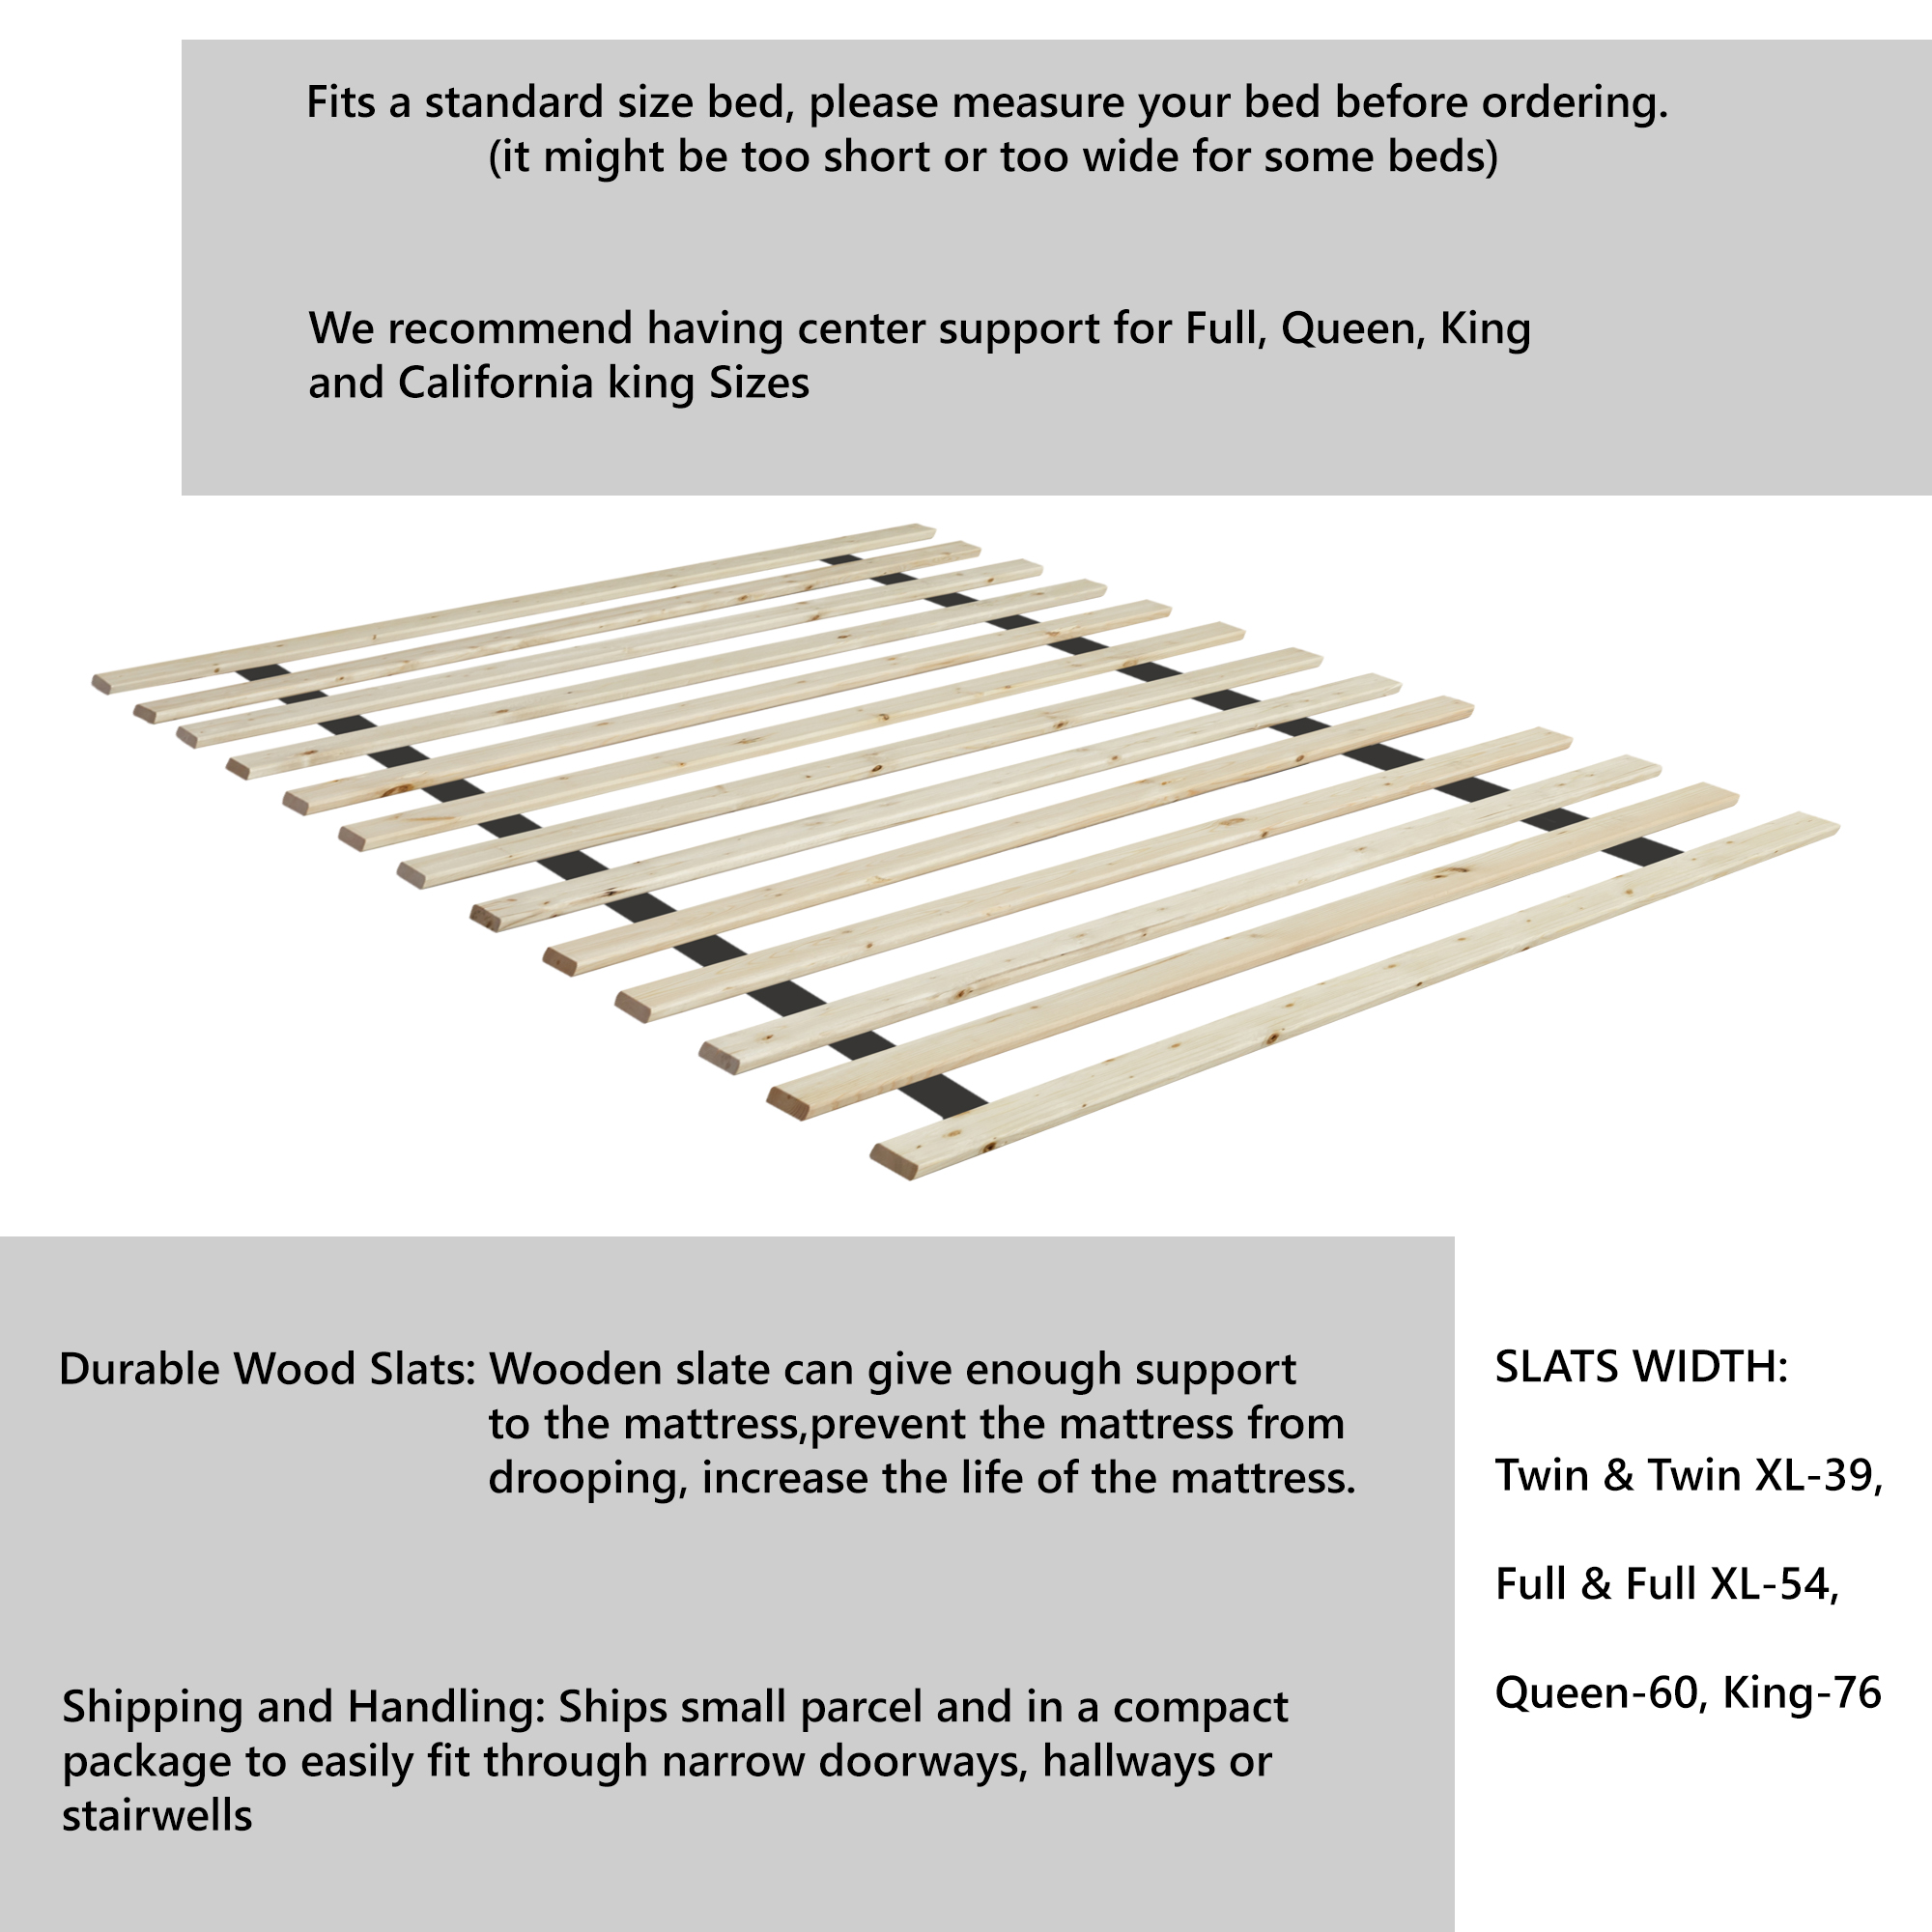 Full Mainstays Heavy Duty Slat Bed Frame King and Cali king -Black Twin